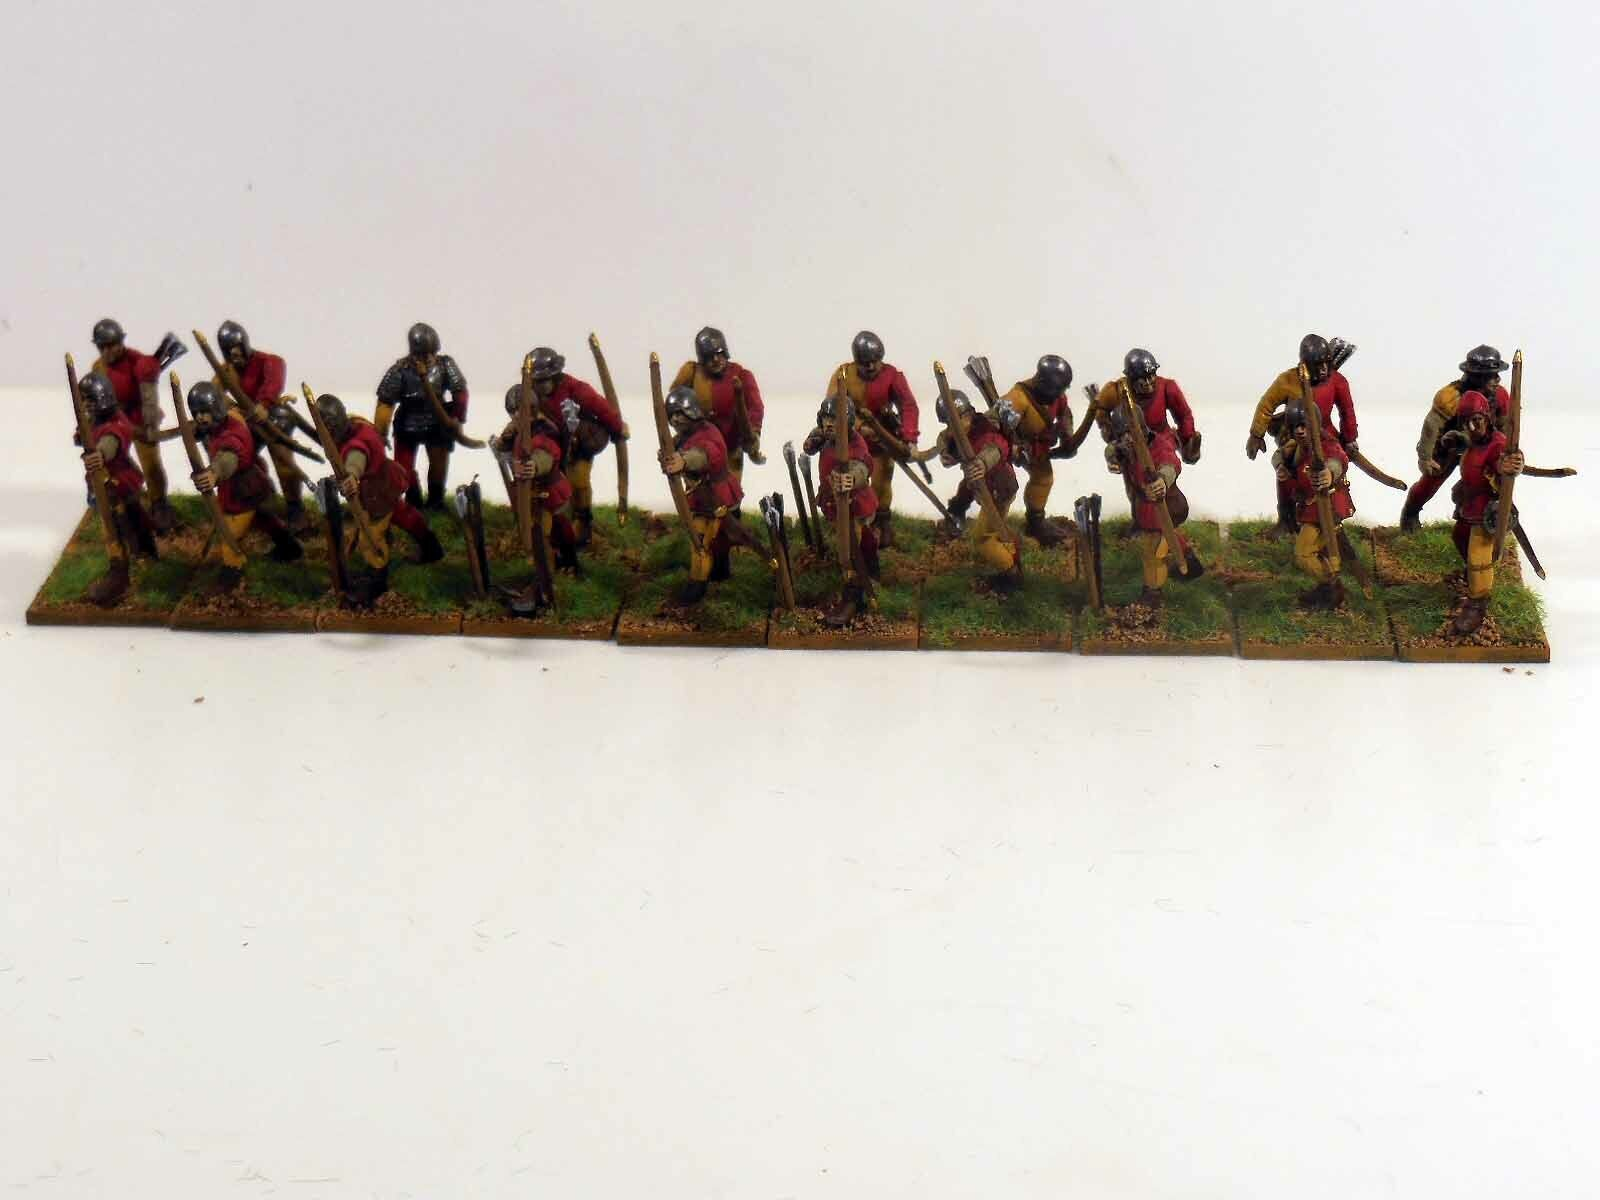 28mm War Of The pinks Bowmen - 20 Figures - Painted & Based